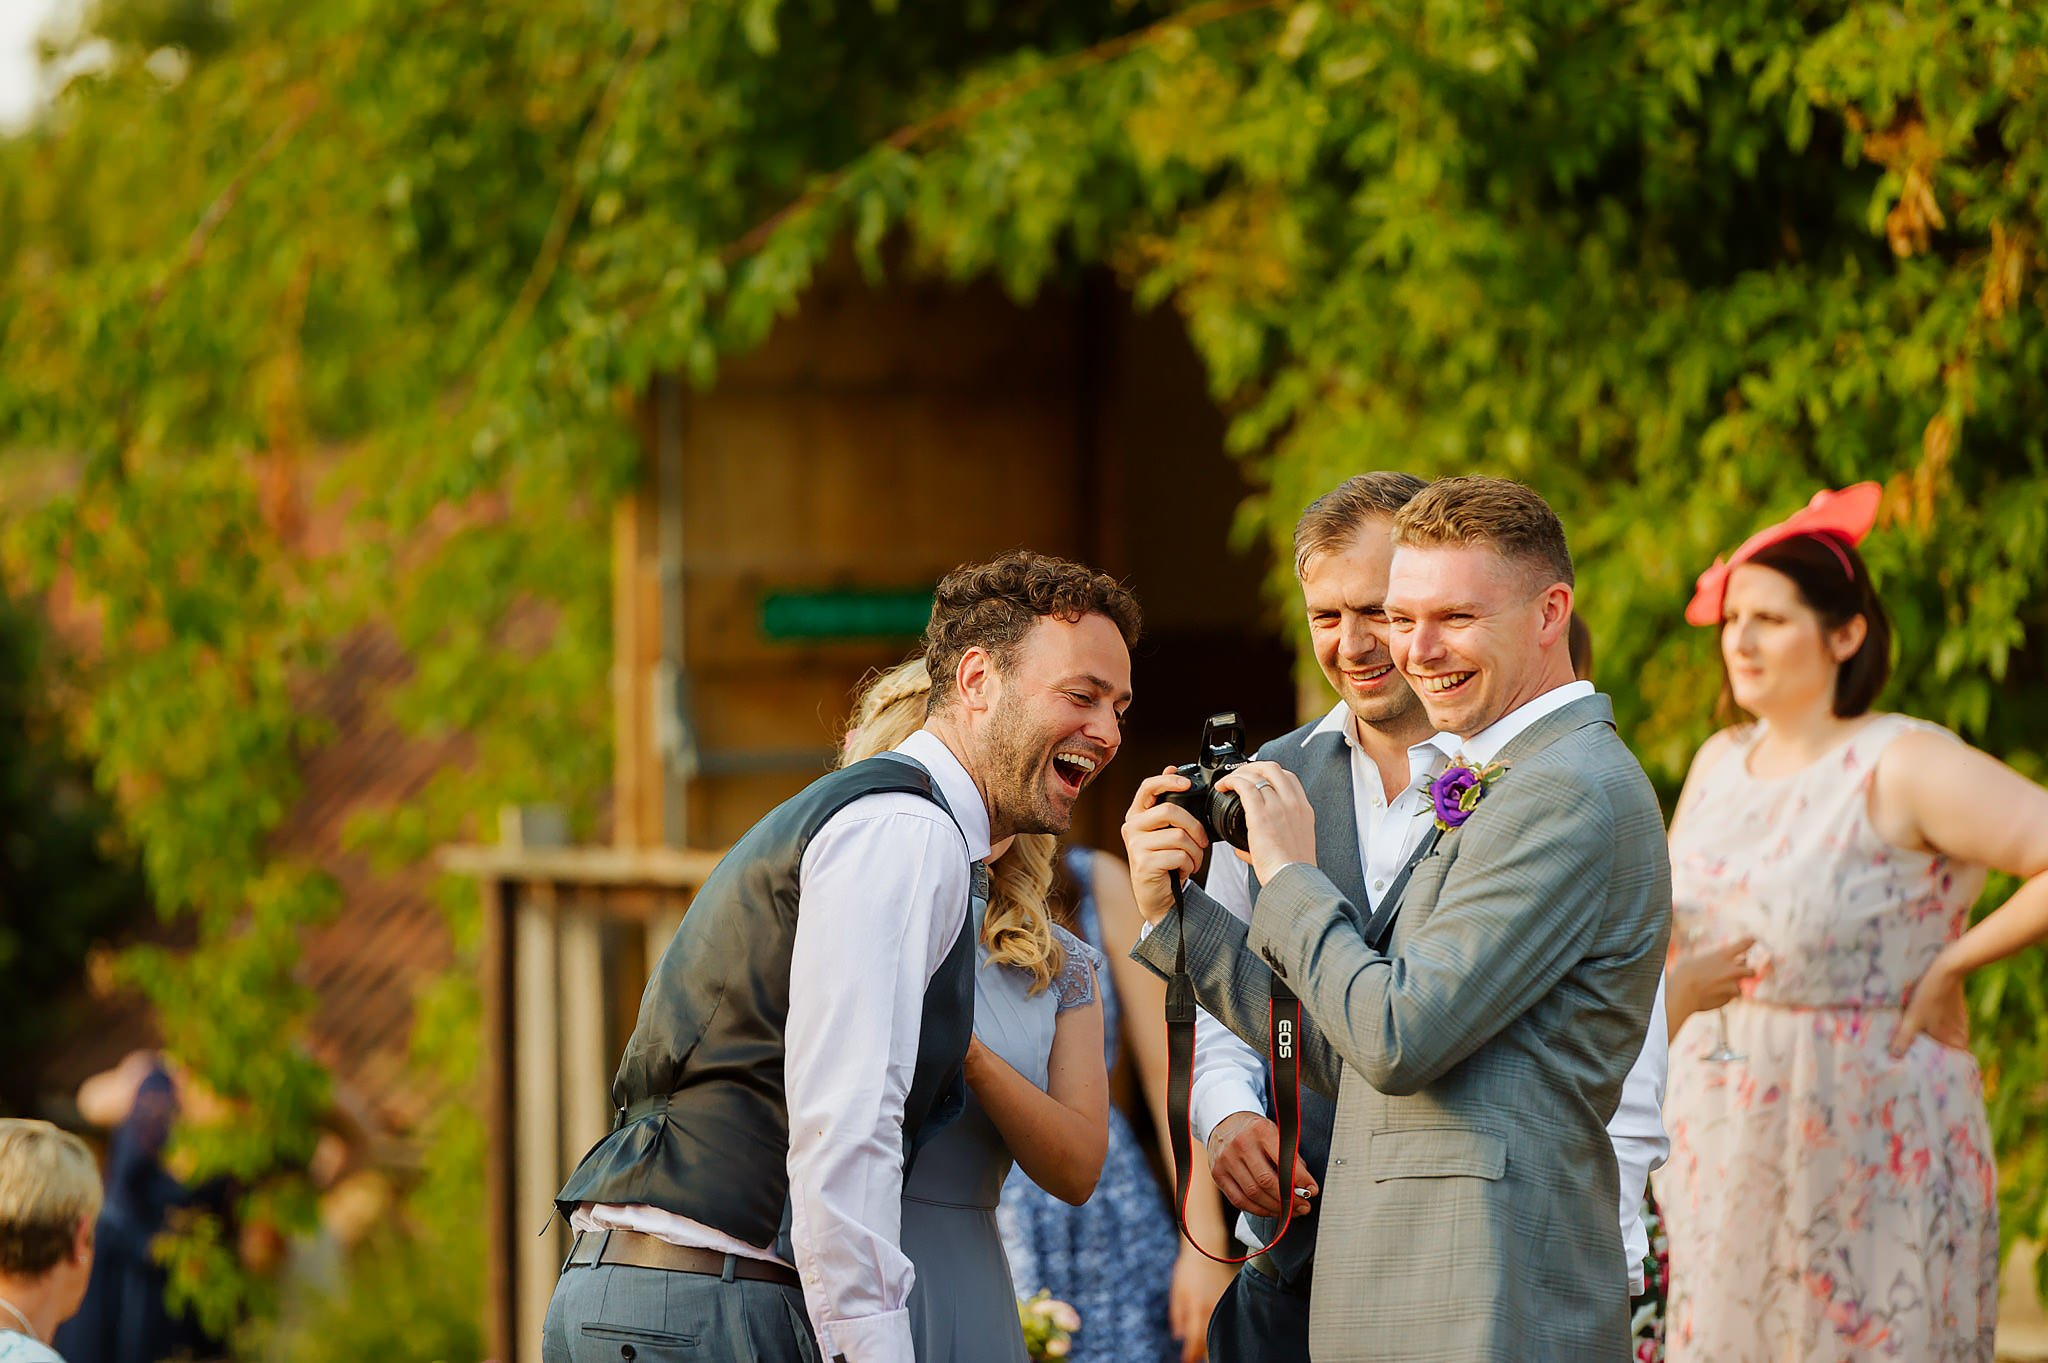 Wedding photography at Hellens Manor in Herefordshire, West Midlands | Shelley + Ian 89